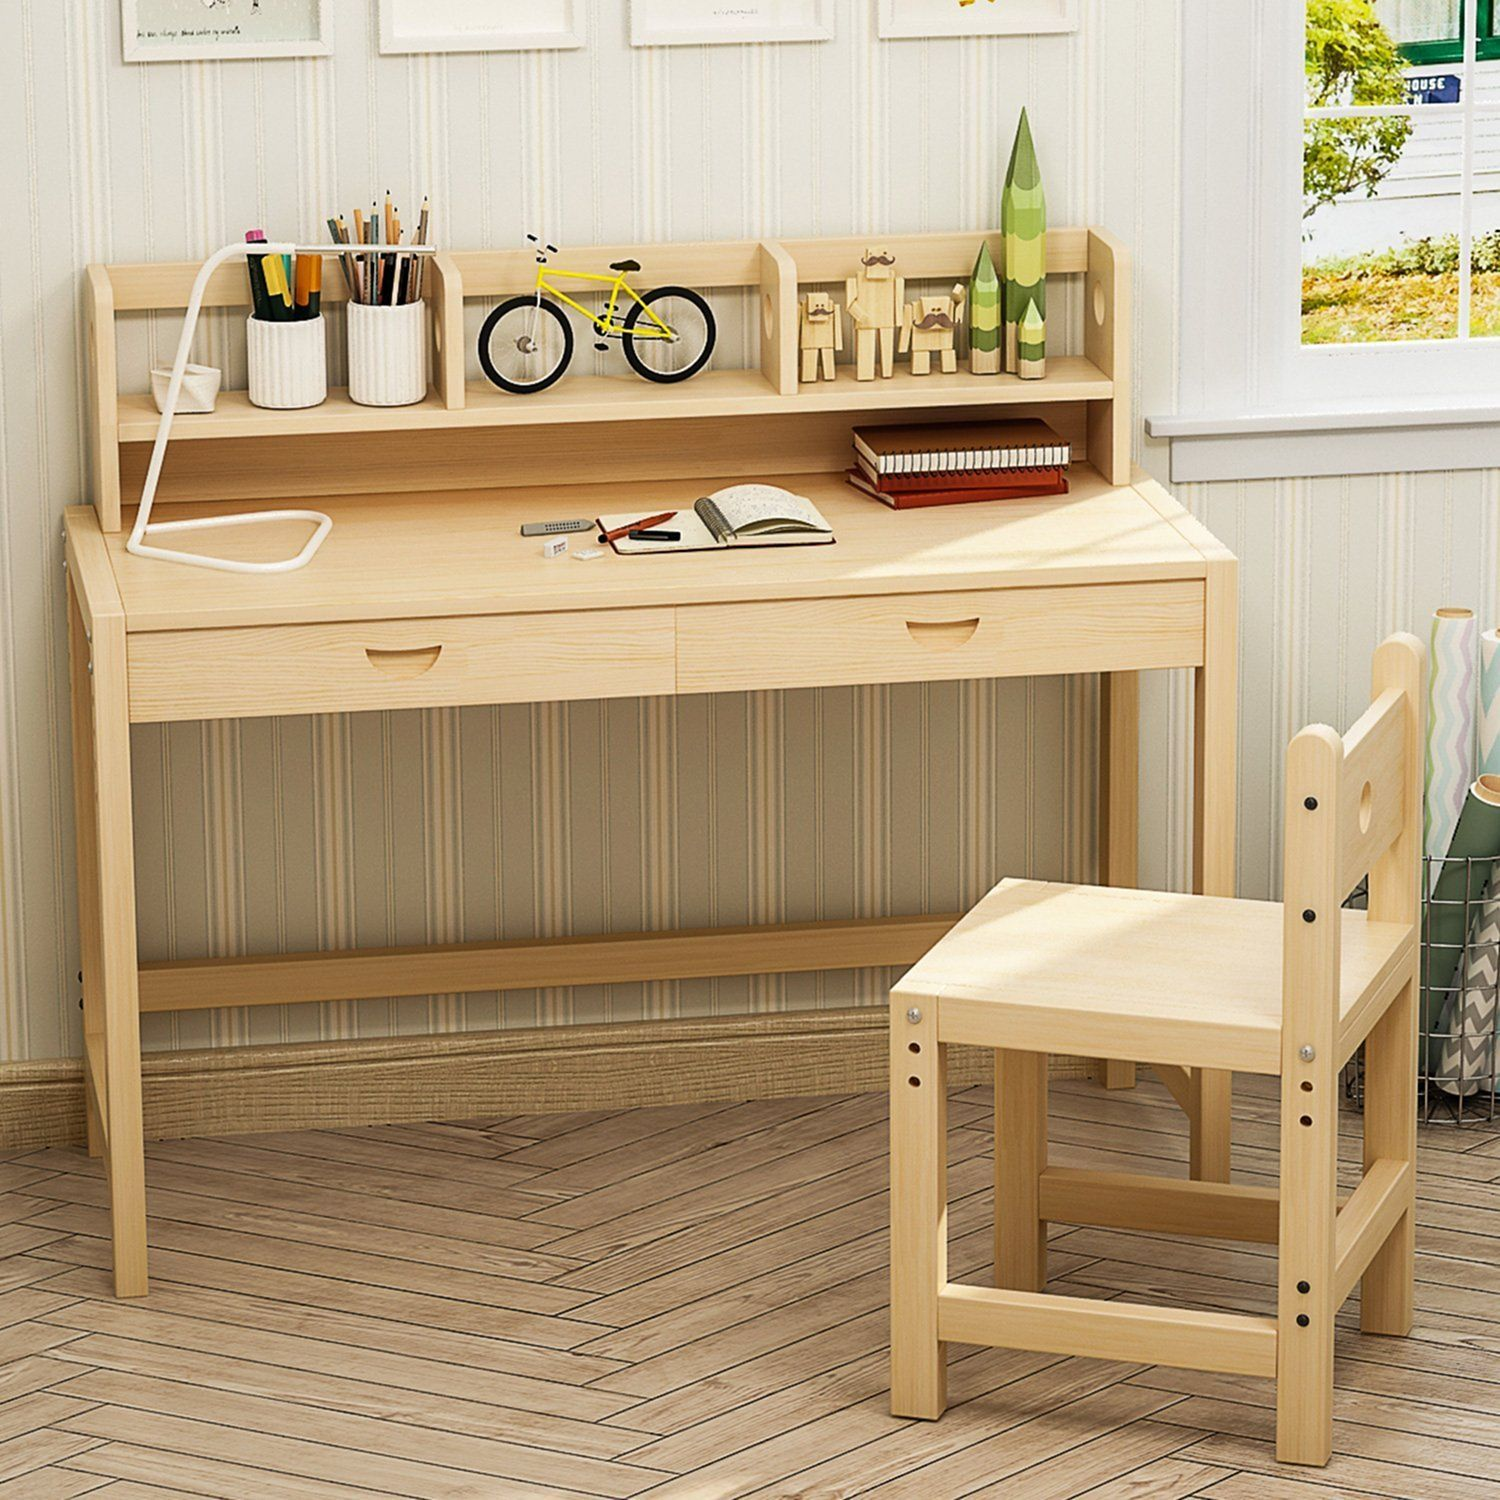 6 Amazing Study Desk Designs So That Children Learn Comfortably